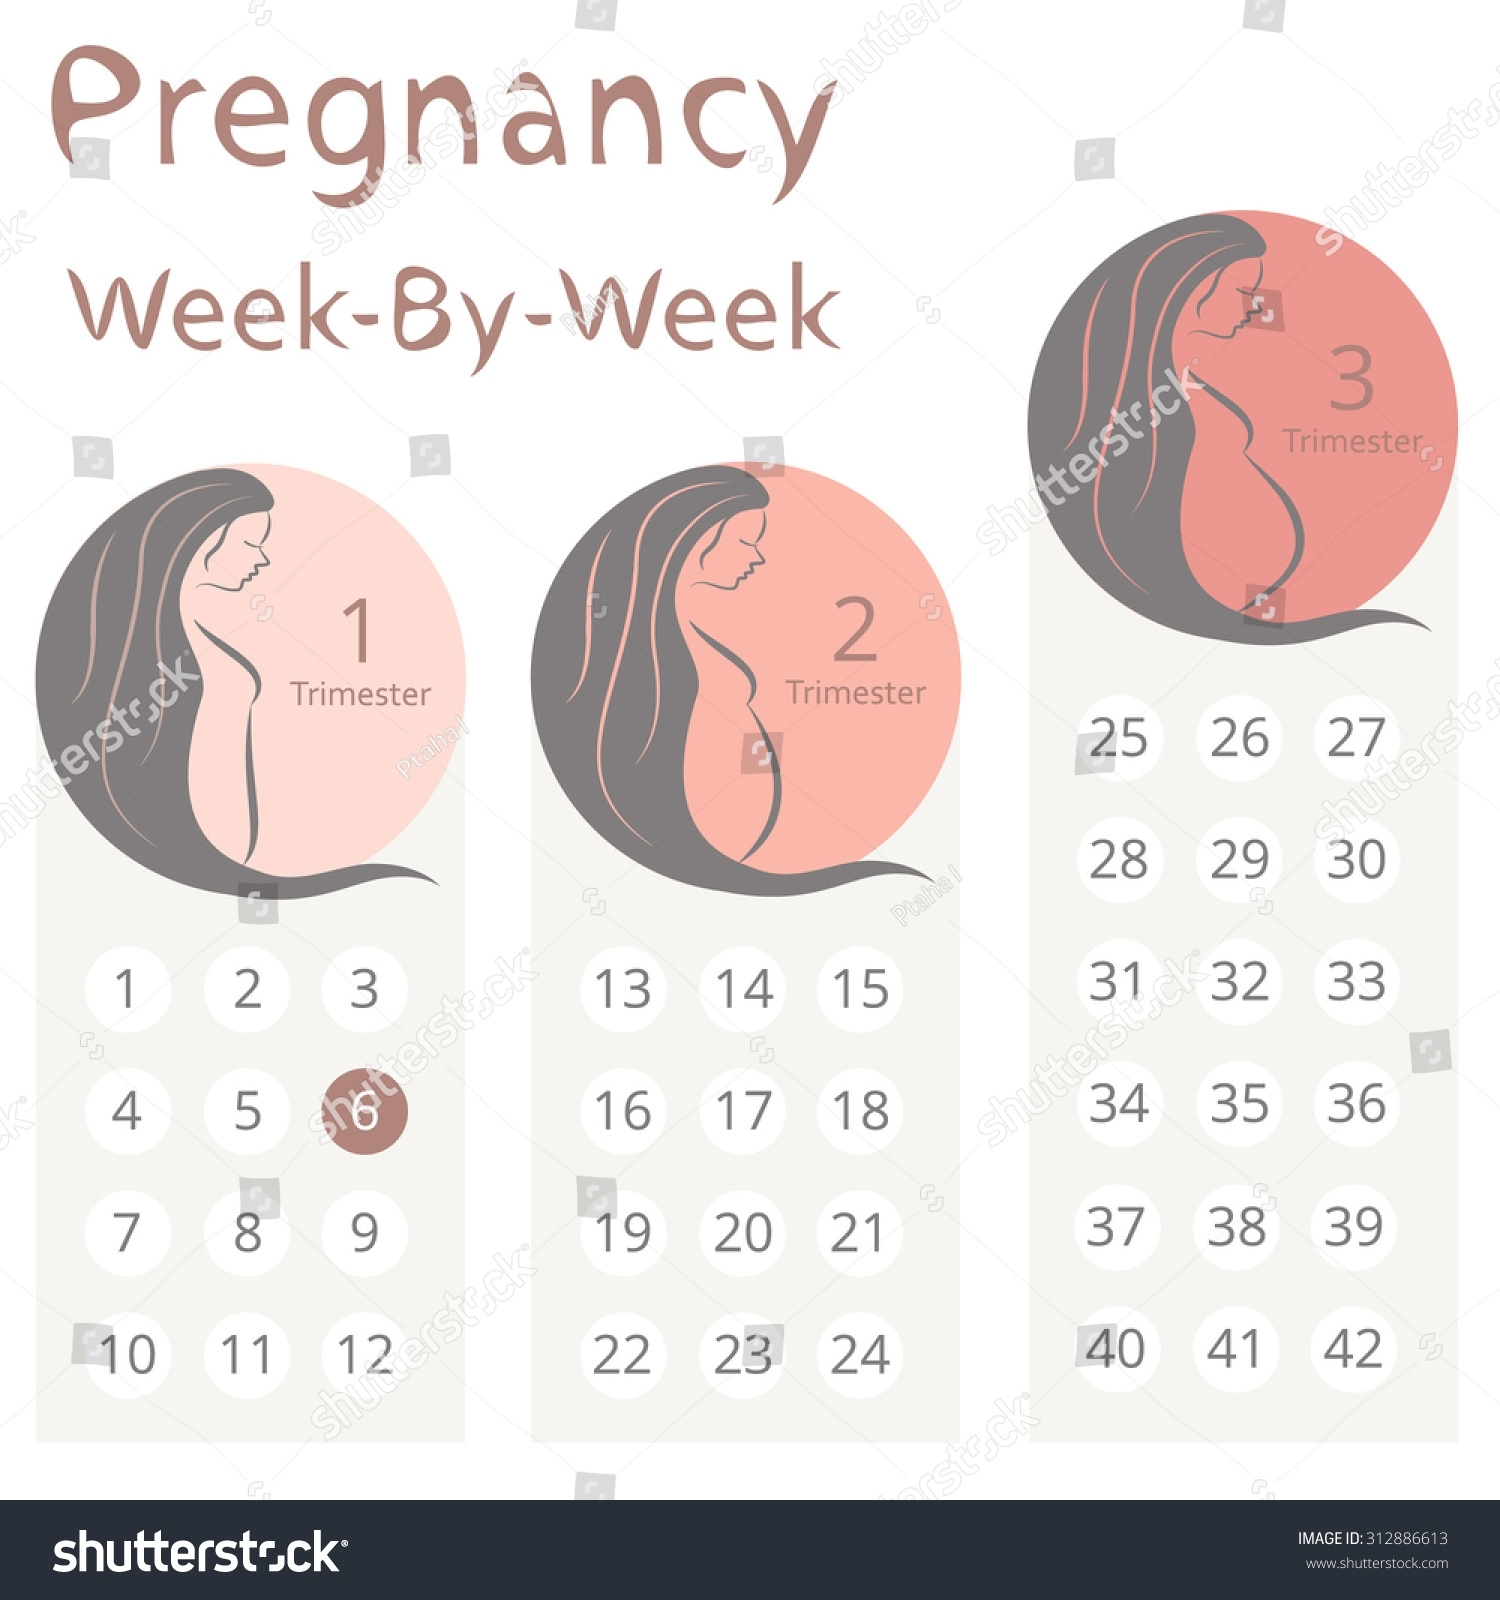 Pregnancy Weekweek Calendar Trimesters Stock Vector (Royalty